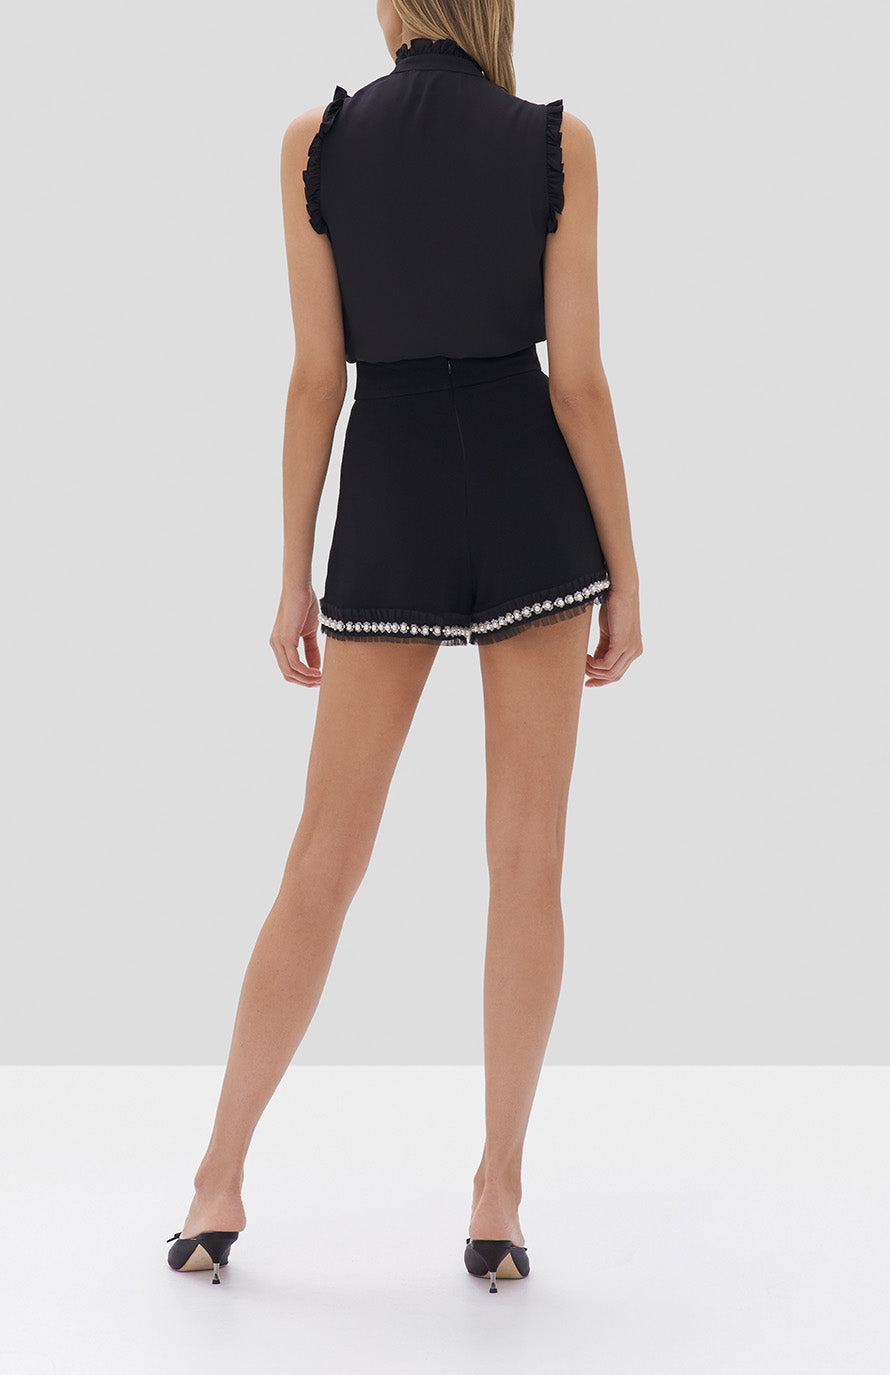 Alexis Lois Top in Black and Kendrick Shorts in Black - Rear View